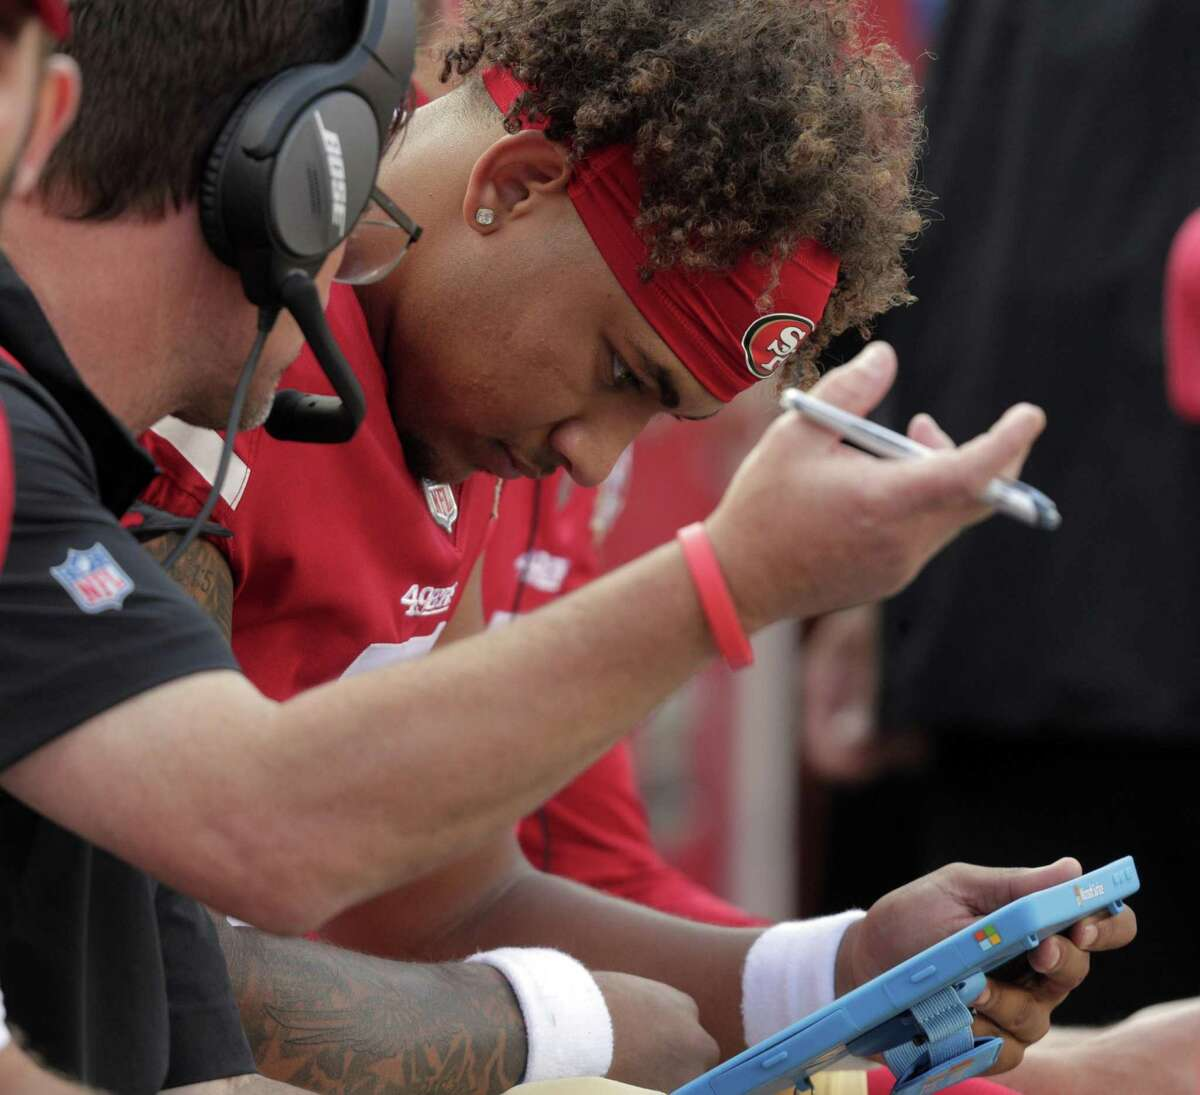 Trey Lance (5) talks with quarterbacks coach Rich Scangarelo on the bench after getting sacked and the 49ers punted in the first half as the San Francisco 49ers played the Kansas City Chiefs at Levi's Stadium in Santa Clara, Calif., on Saturday, August 14, 2021.